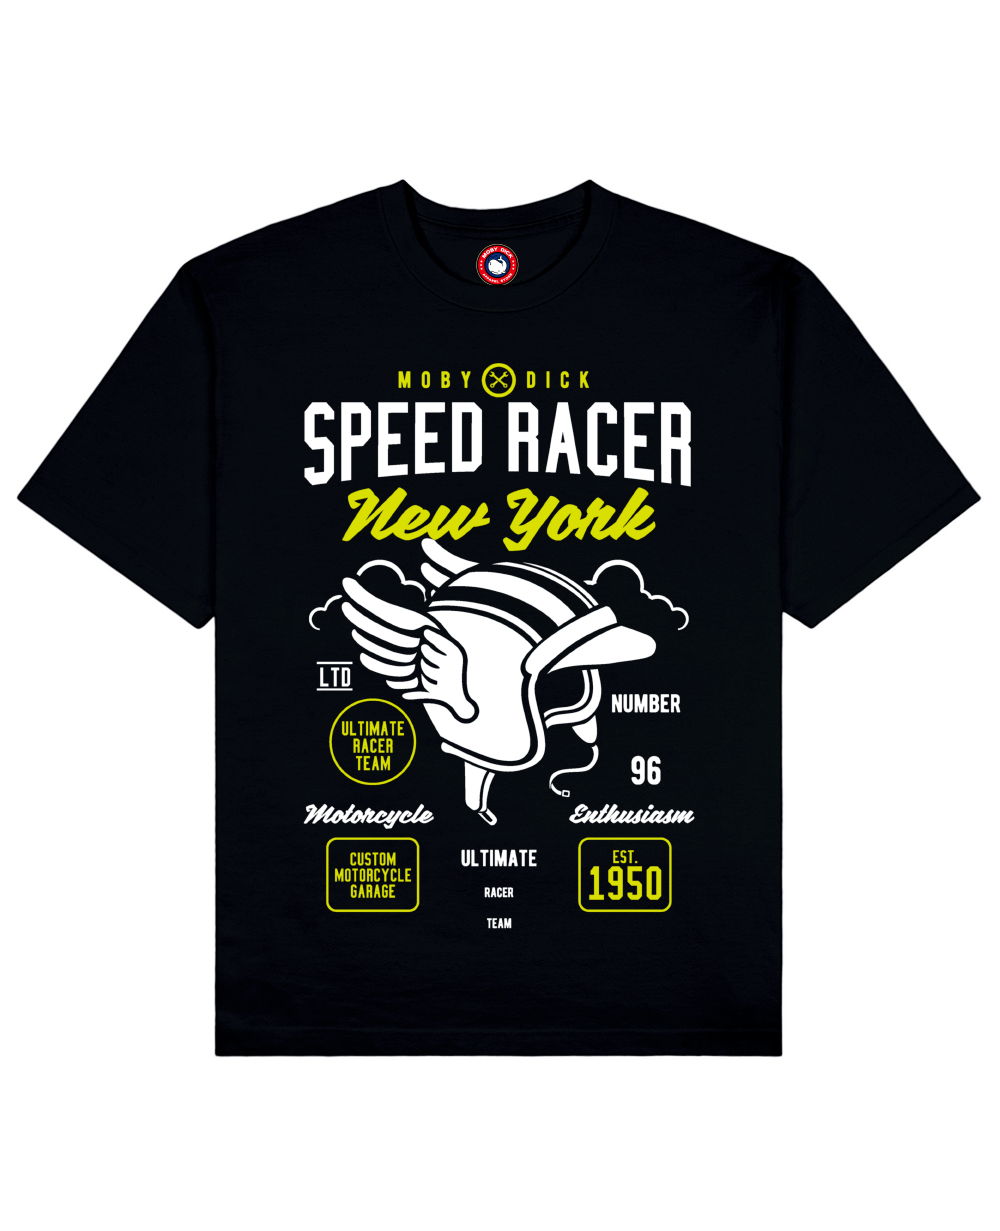 Speed Racer Print T-Shirt in Black - T-Shirts - MOBY DICK - BRANMA